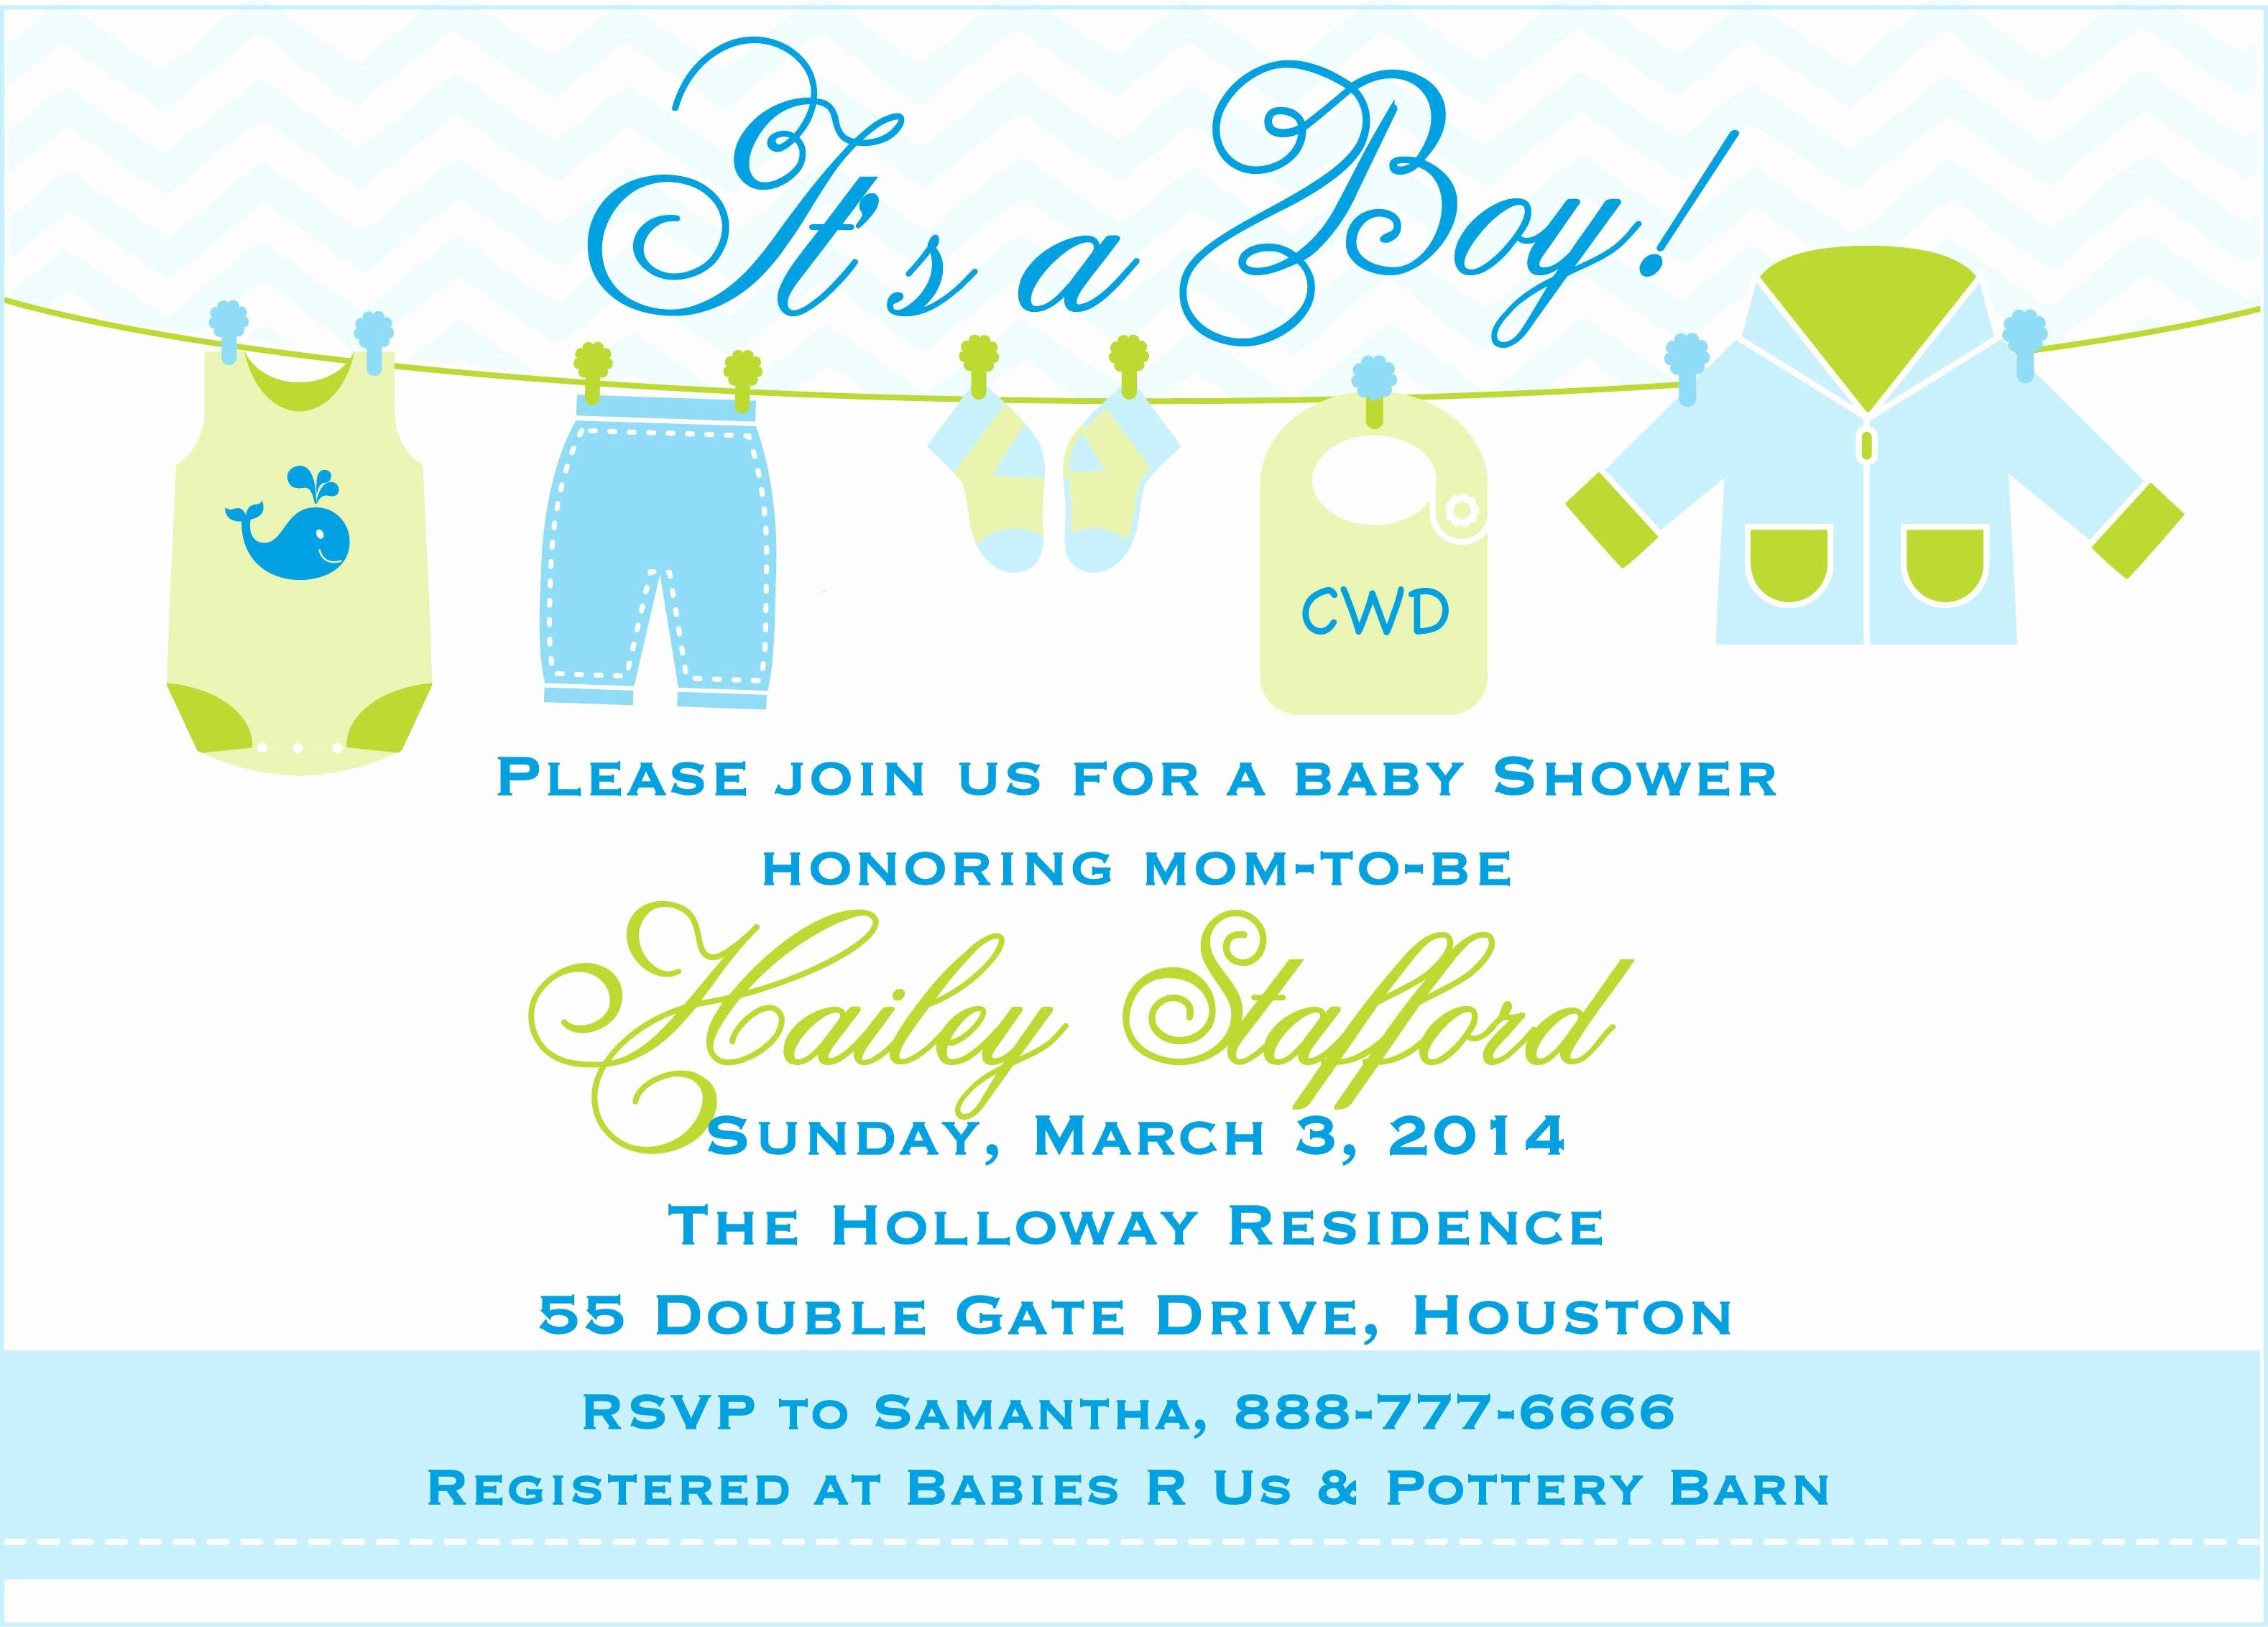 Free Baby Shower Templates Fresh Free Printable Baby Shower Invitations Templates for Boys